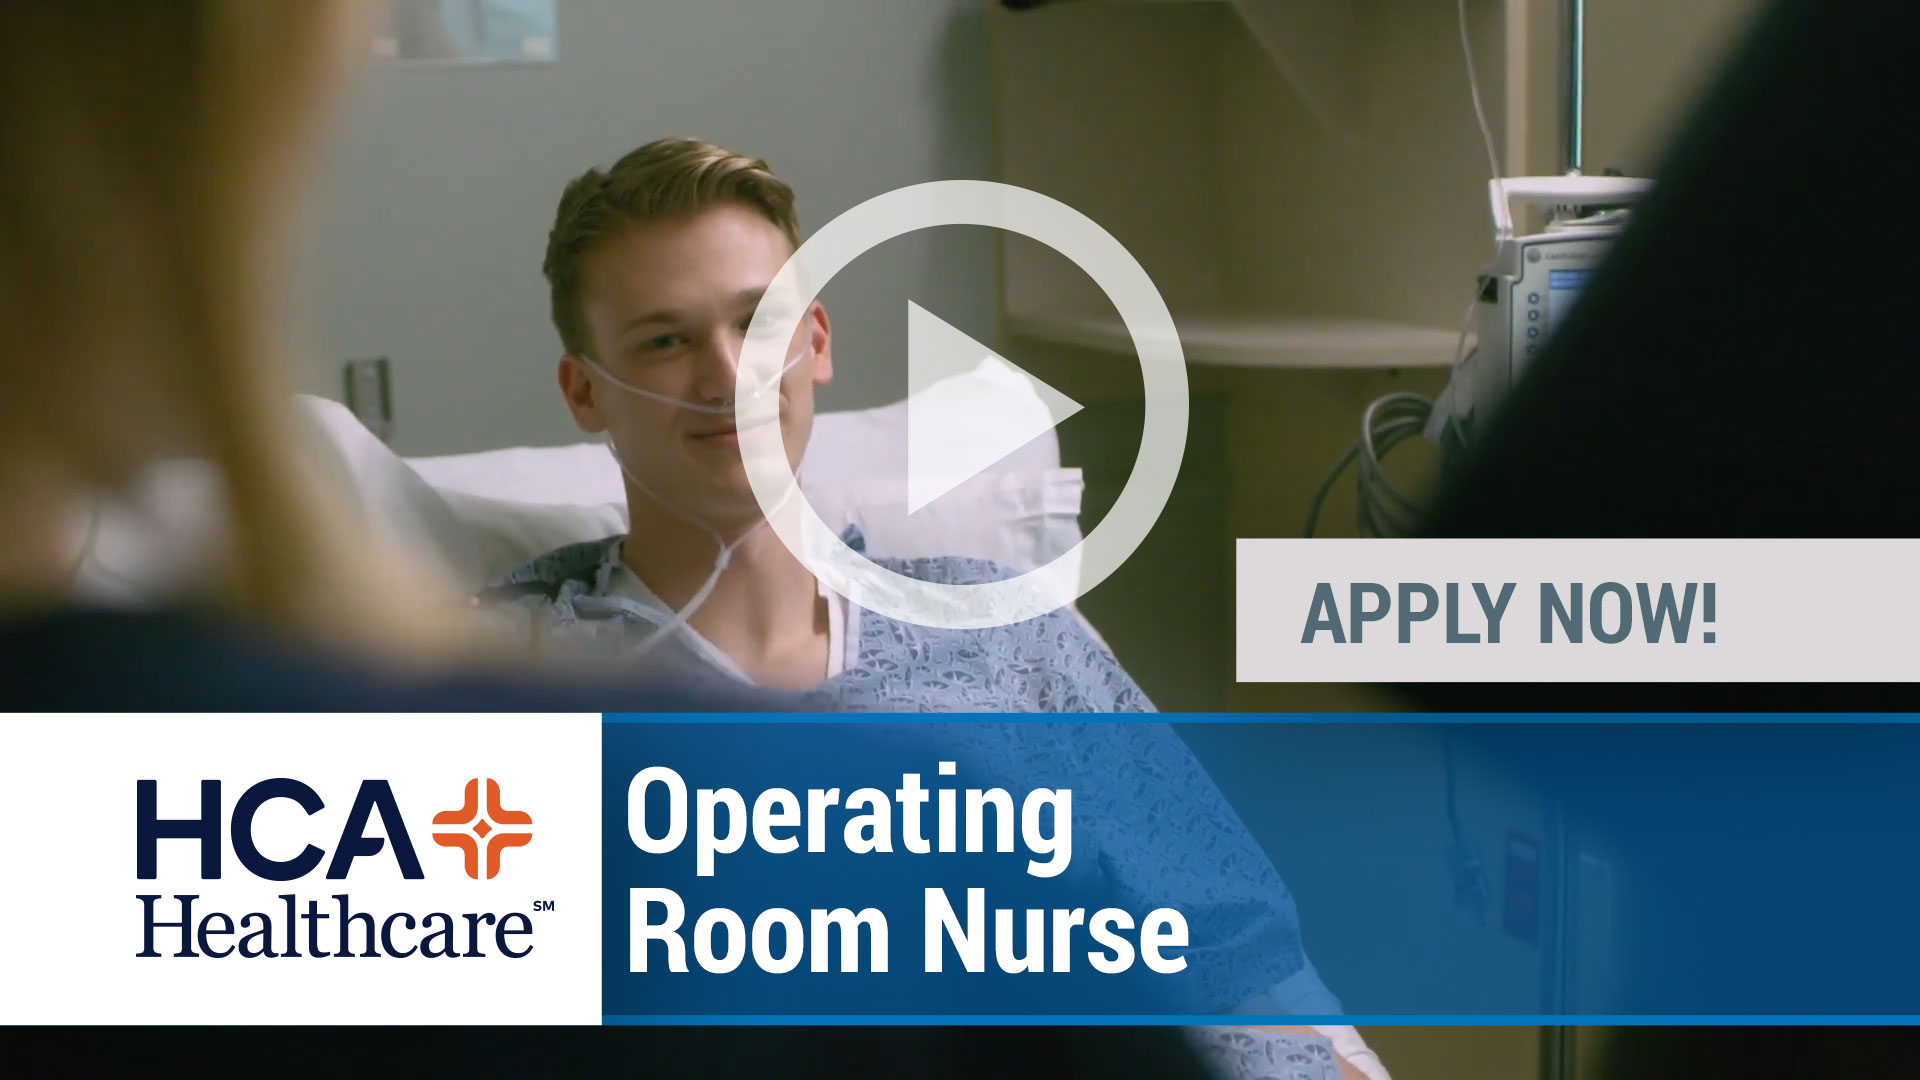 Watch our careers video for available job opening Operating Room Nurse in Charleston, South Carolina